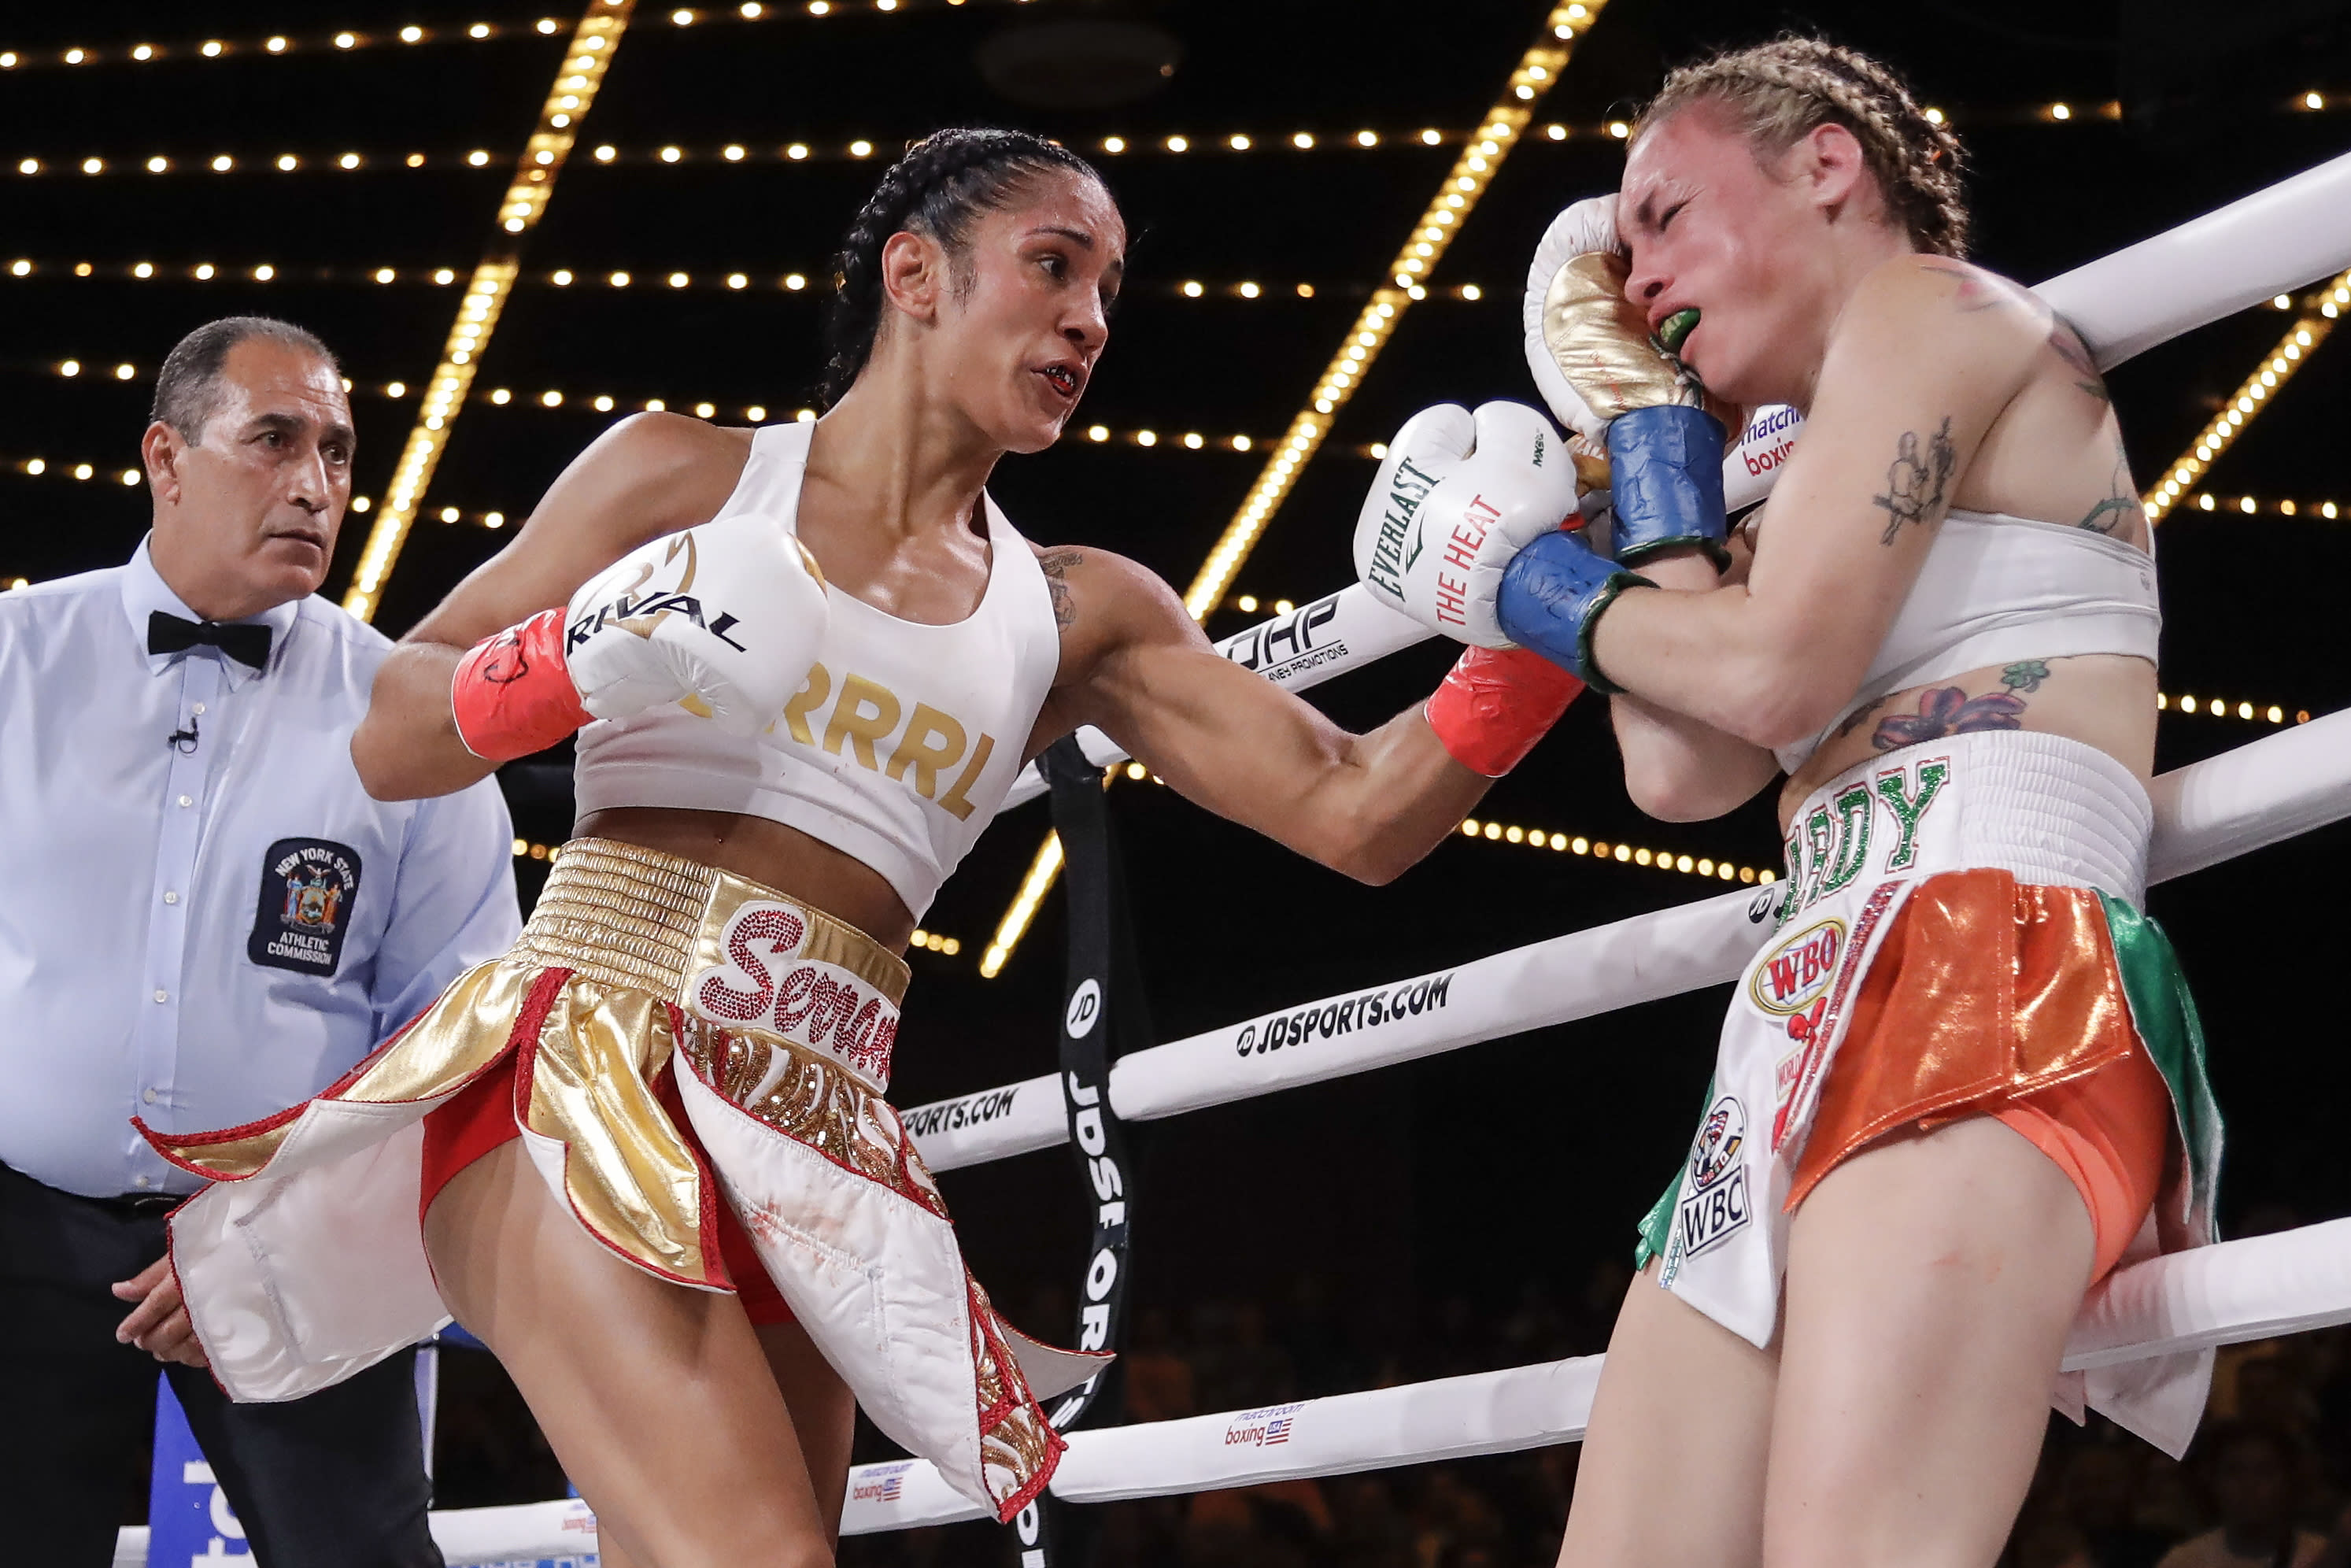 Amanda Serrano, left, punches Heather Hardy during the first round of a boxing match Friday, Sept. 13, 2019, in New York. Serrano won the fight. (AP Photo/Frank Franklin II)